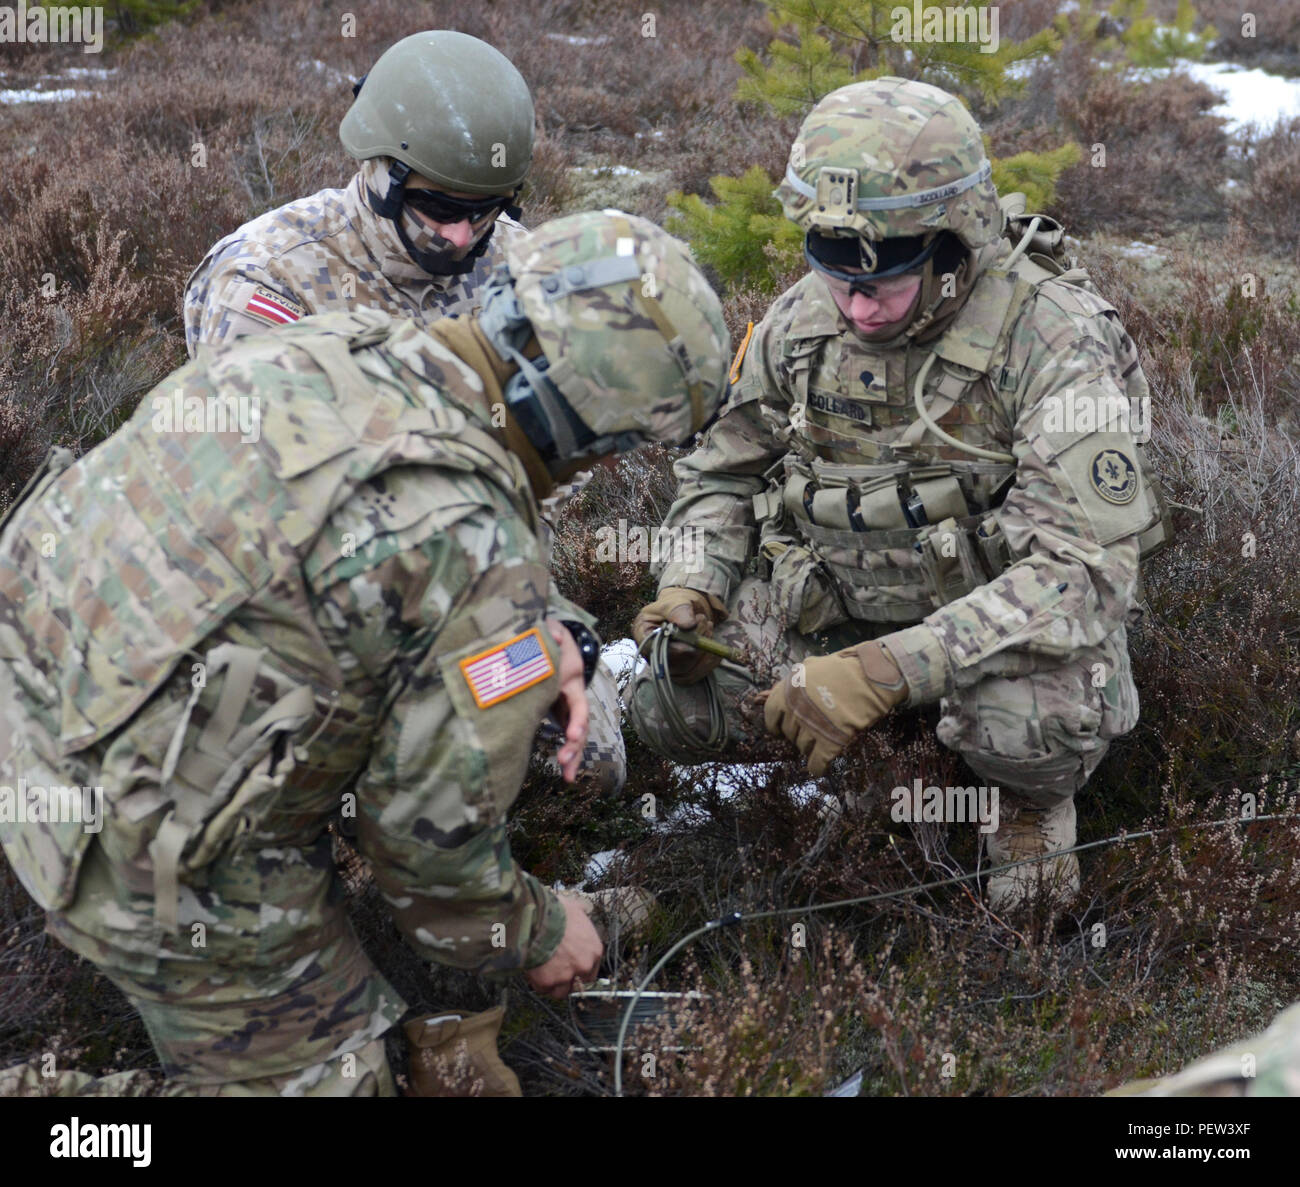 Soldiers of 3rd Squadron, 2nd Cavalry Regiment, stationed out of Vilseck, Germany, along with a Latvian Engineer Soldier, prepare to connect the fuse lines to the improvised explosive devices during a demolition exercise at Adazi Training Area in Latvia, Jan. 29, 2016. (Photo by Staff Sgt. Steven Colvin/Released) - Stock Image